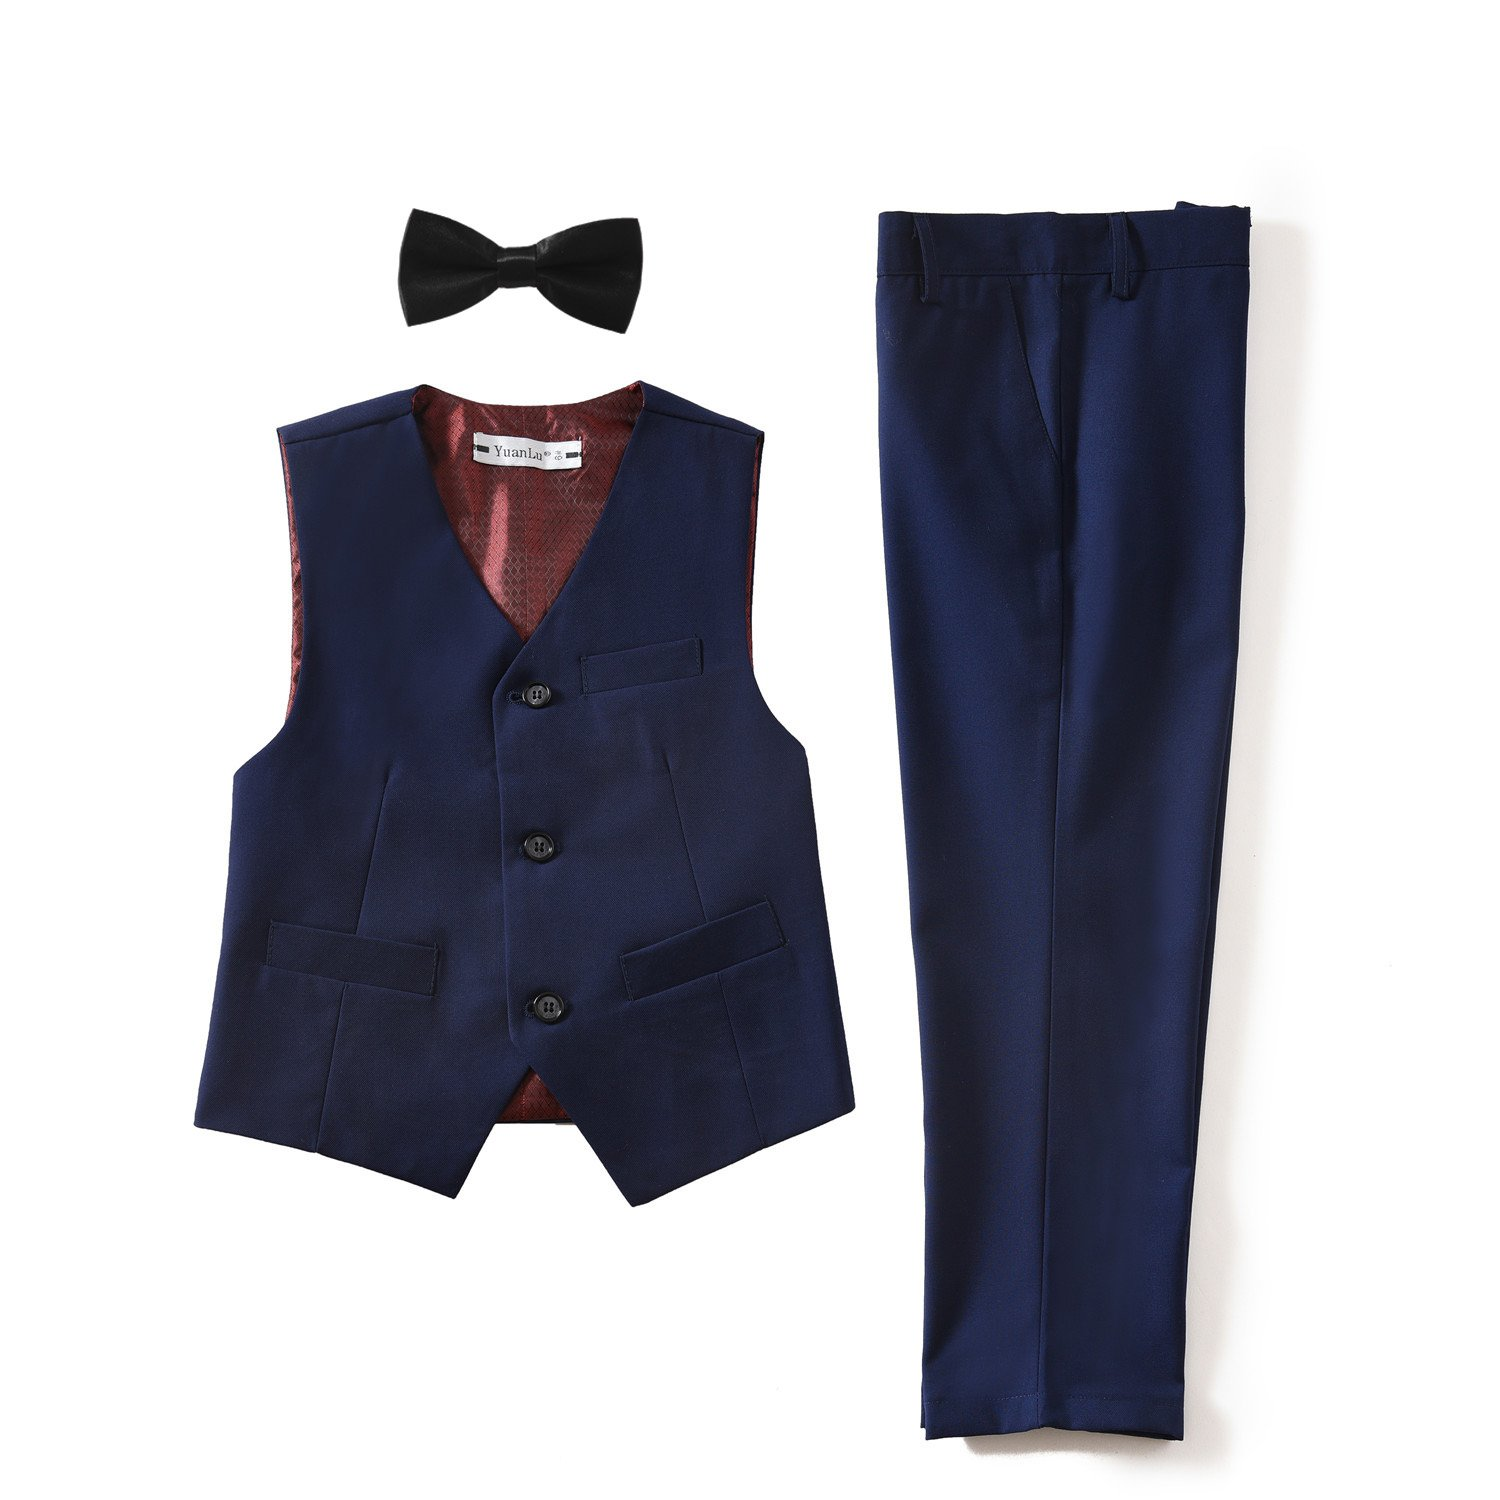 Yuanlu 3 Piece Kids Boys' Formal Vest and Pants Dress Suits Set for Party VPB-All